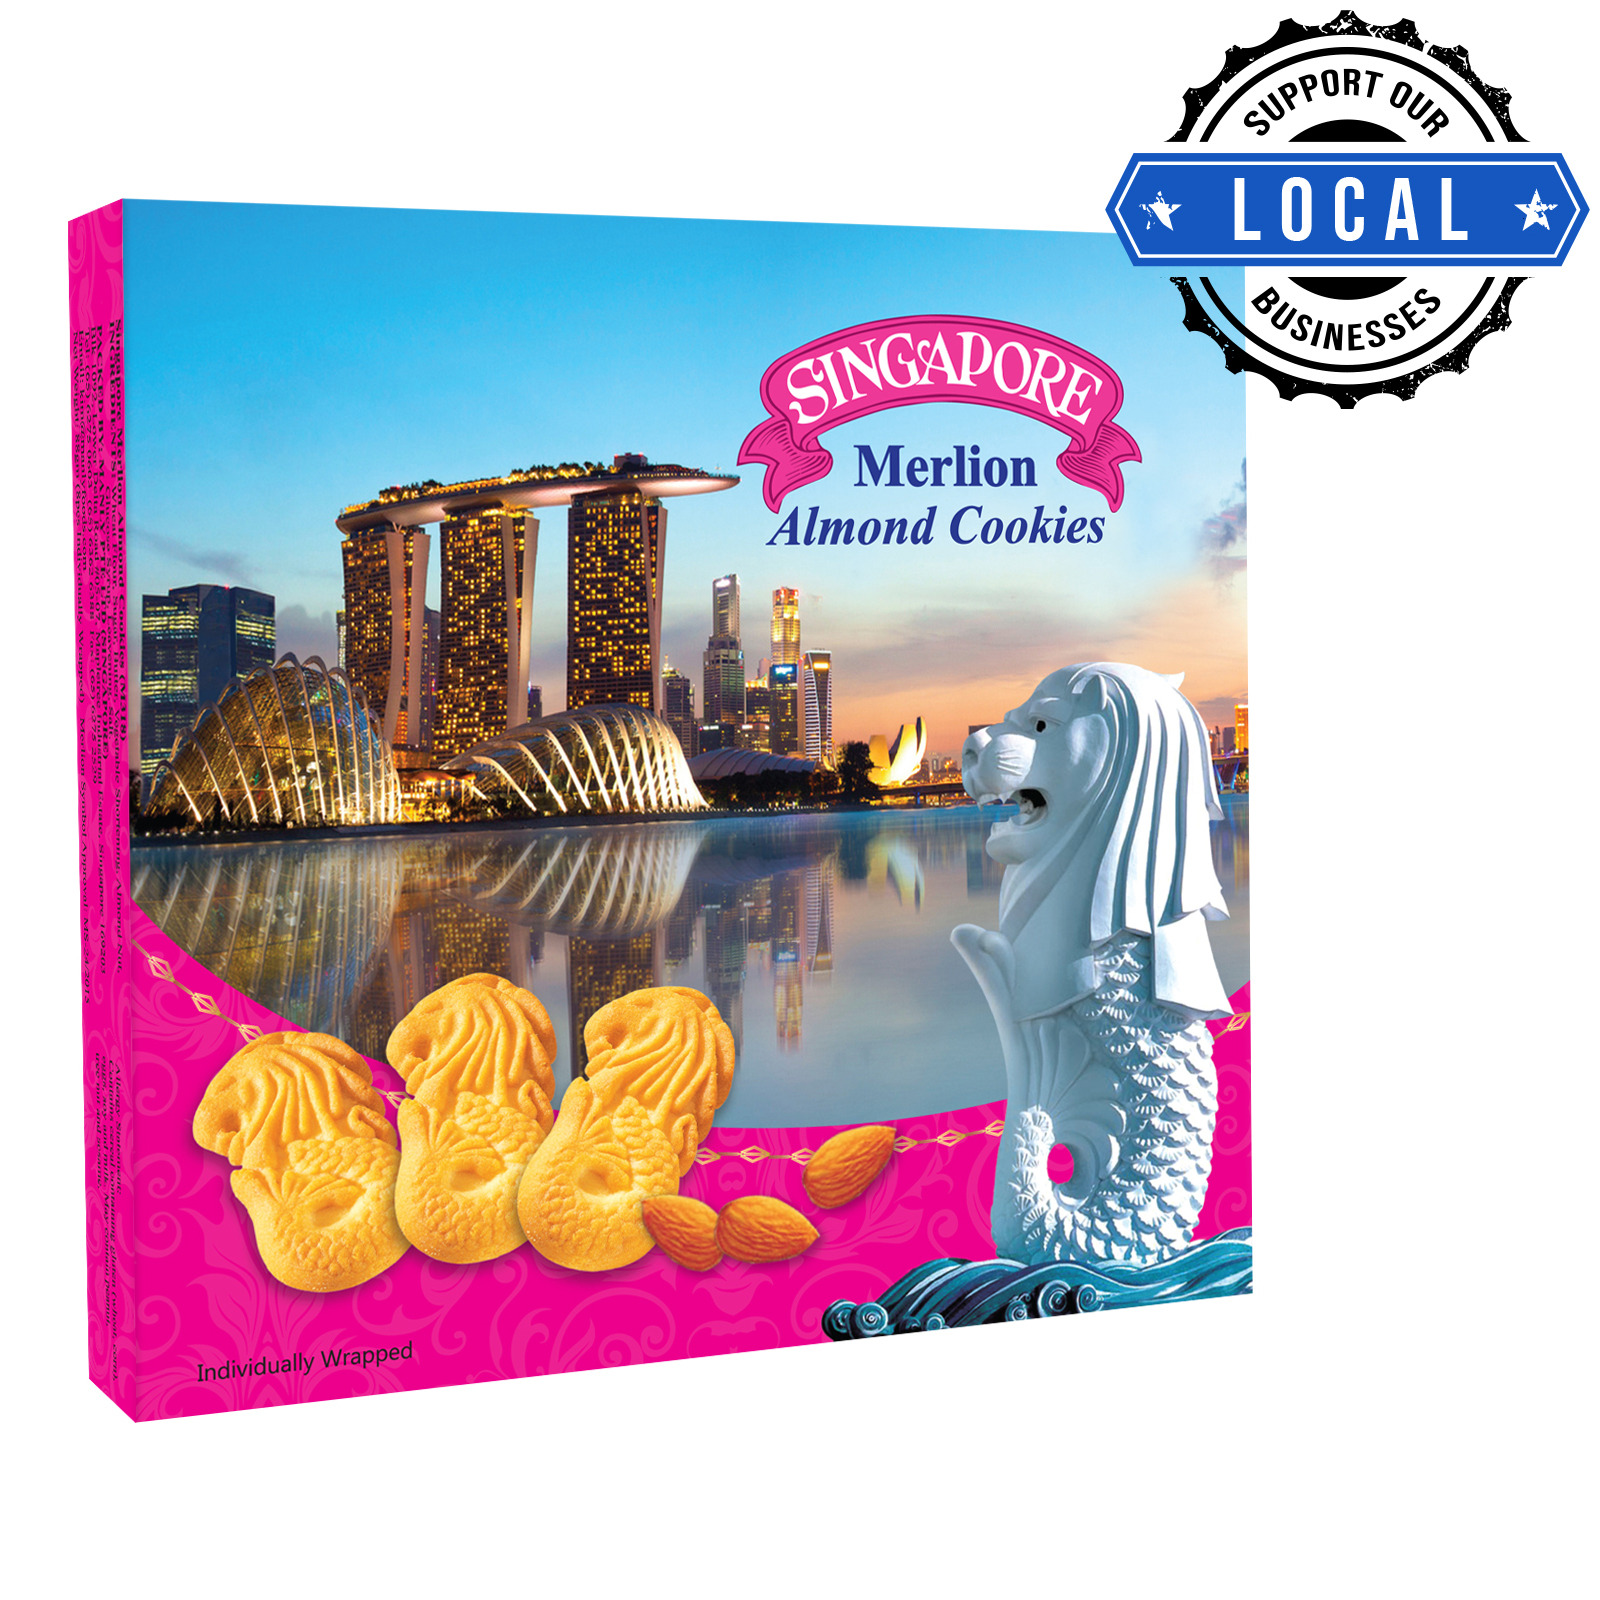 Manly Singapore Merlion Butter Cookies - Almond